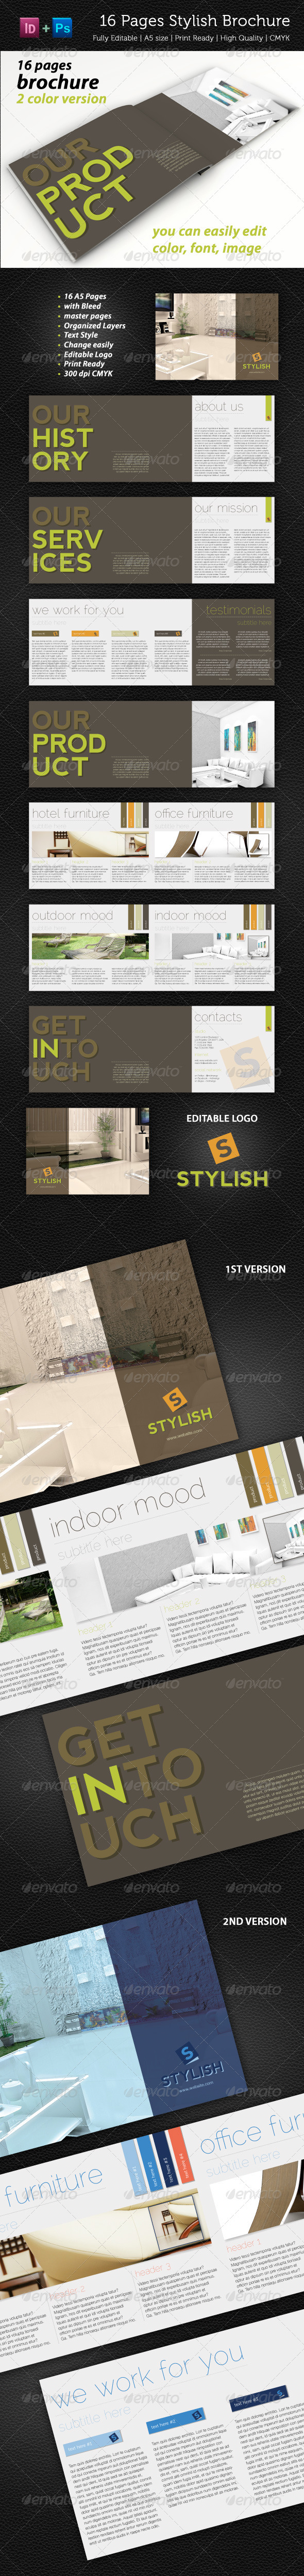 GraphicRiver 16 Pages Stylish Brochure 1994215